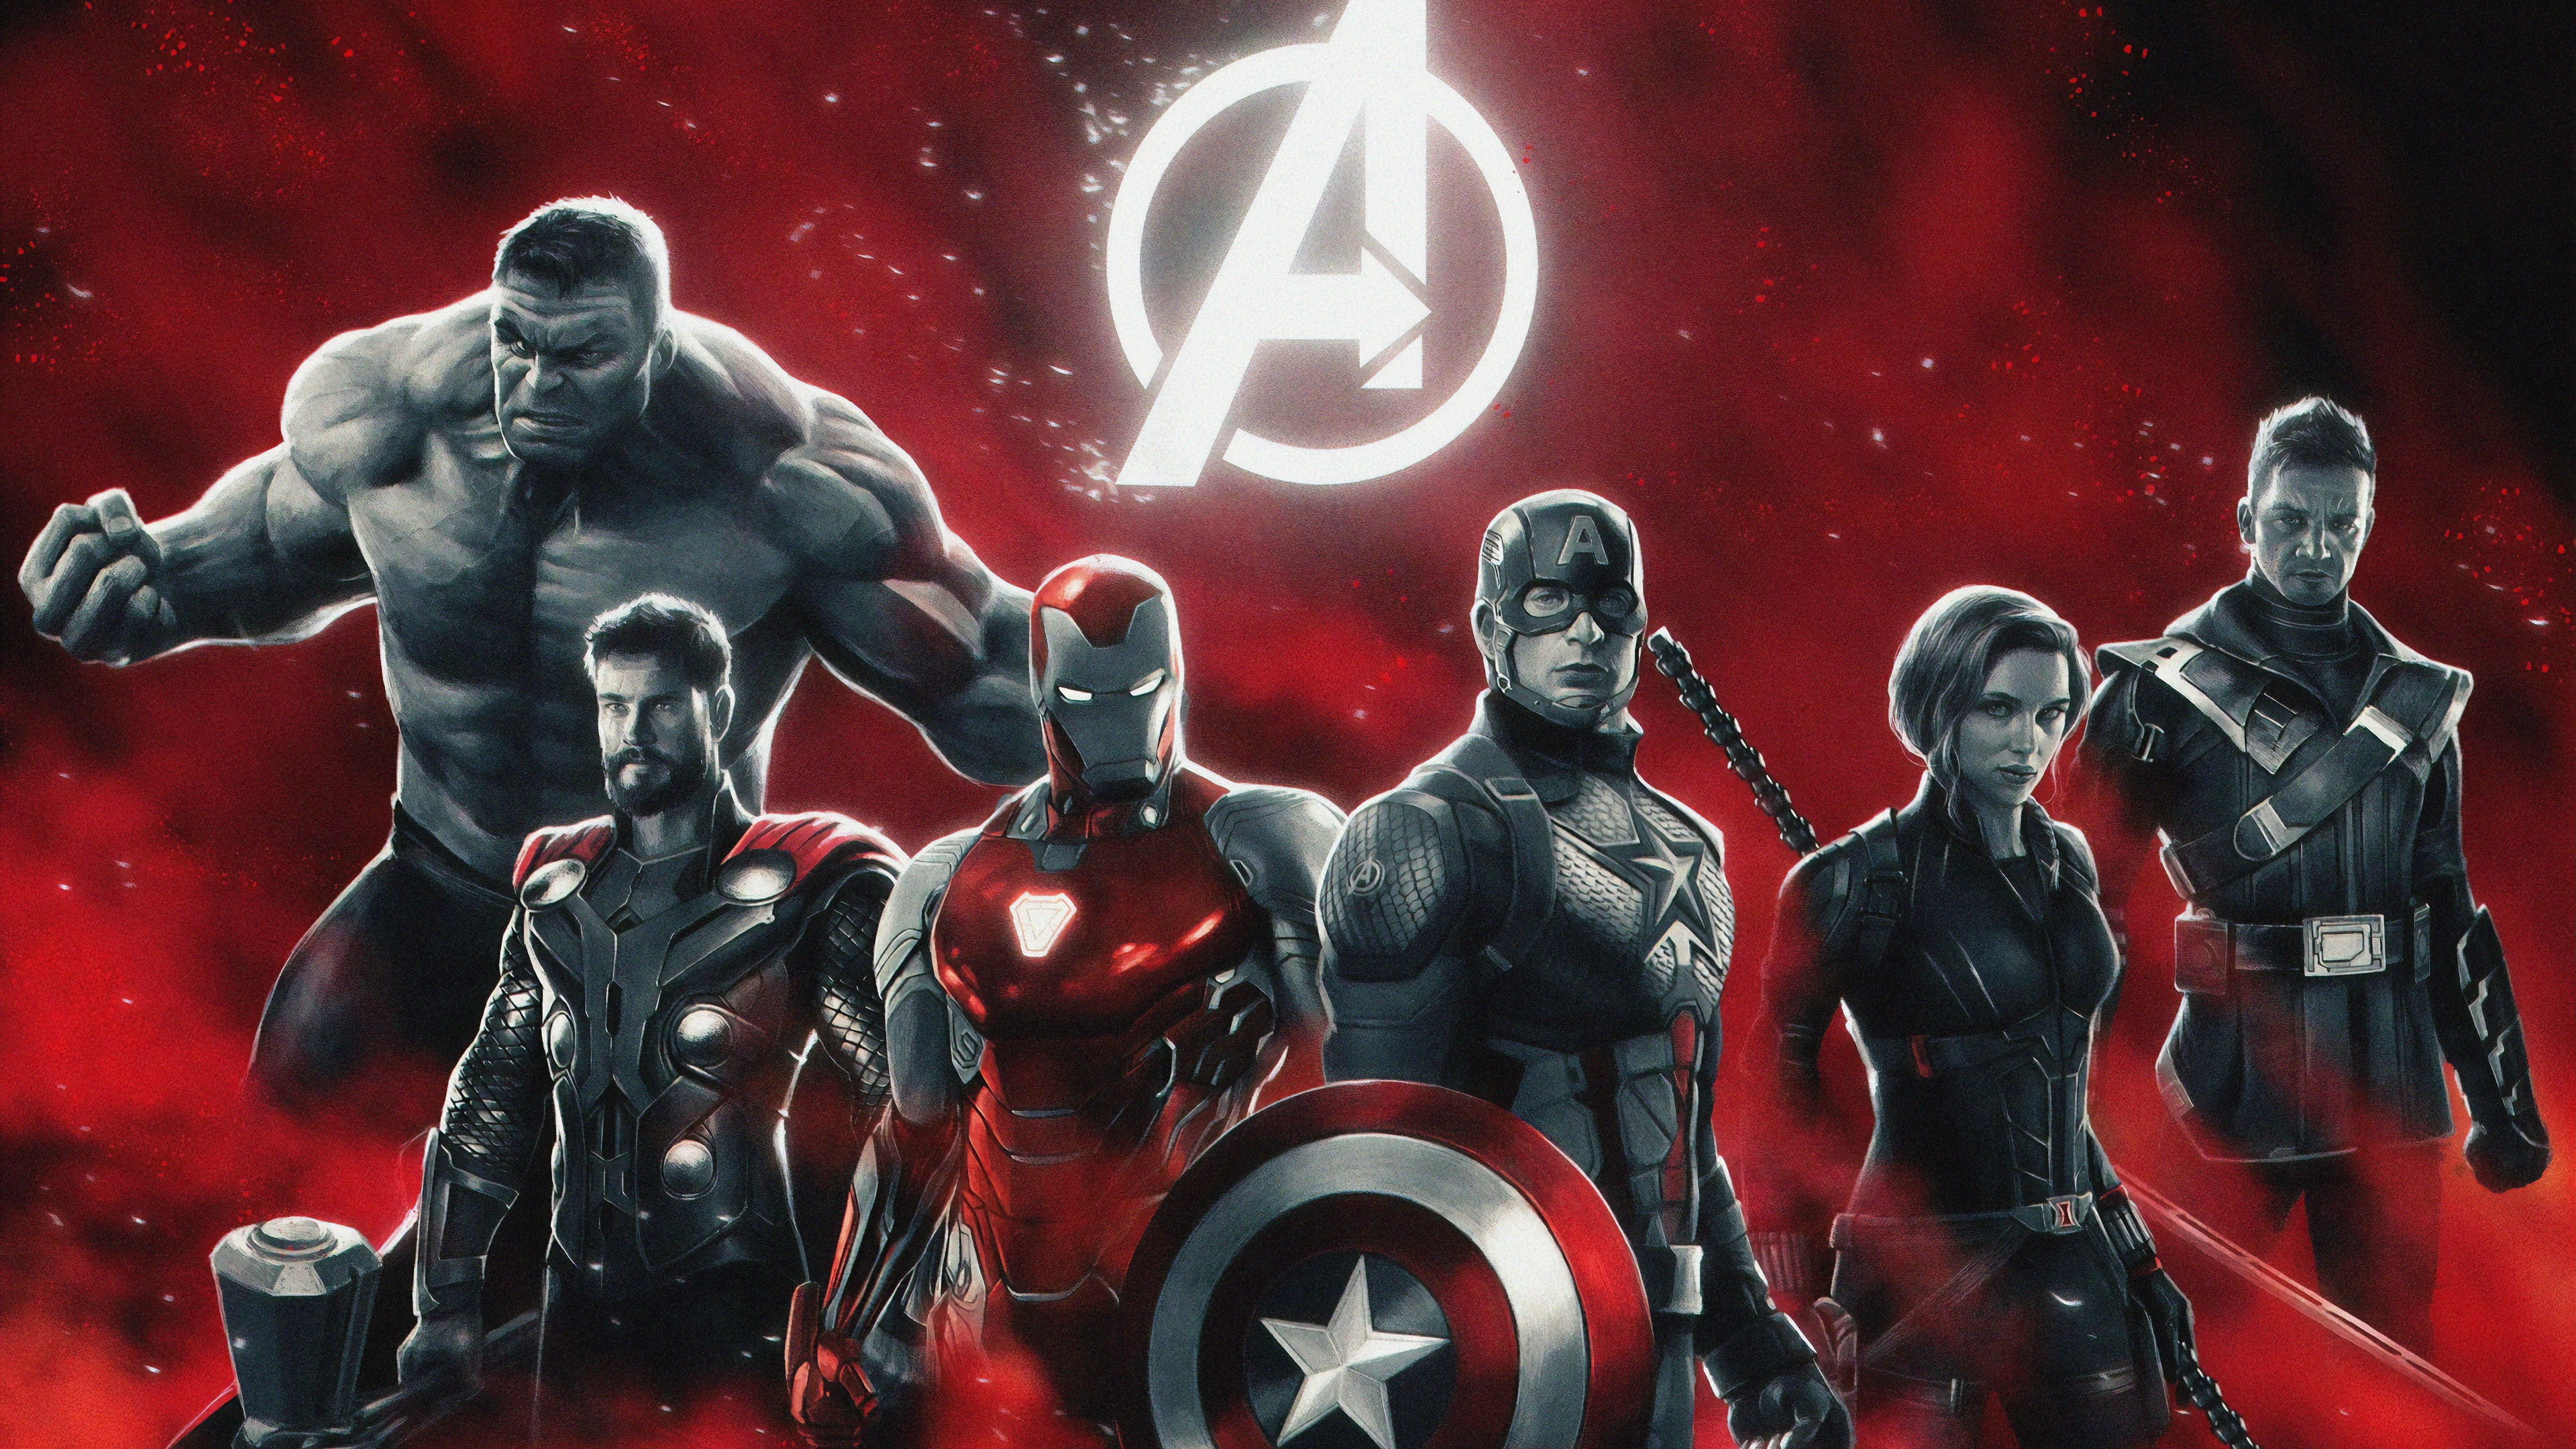 Avengers 4k Wallpaper Hulk Thor Iron Man Captain America Black Widow Hawkeye Movies 1140